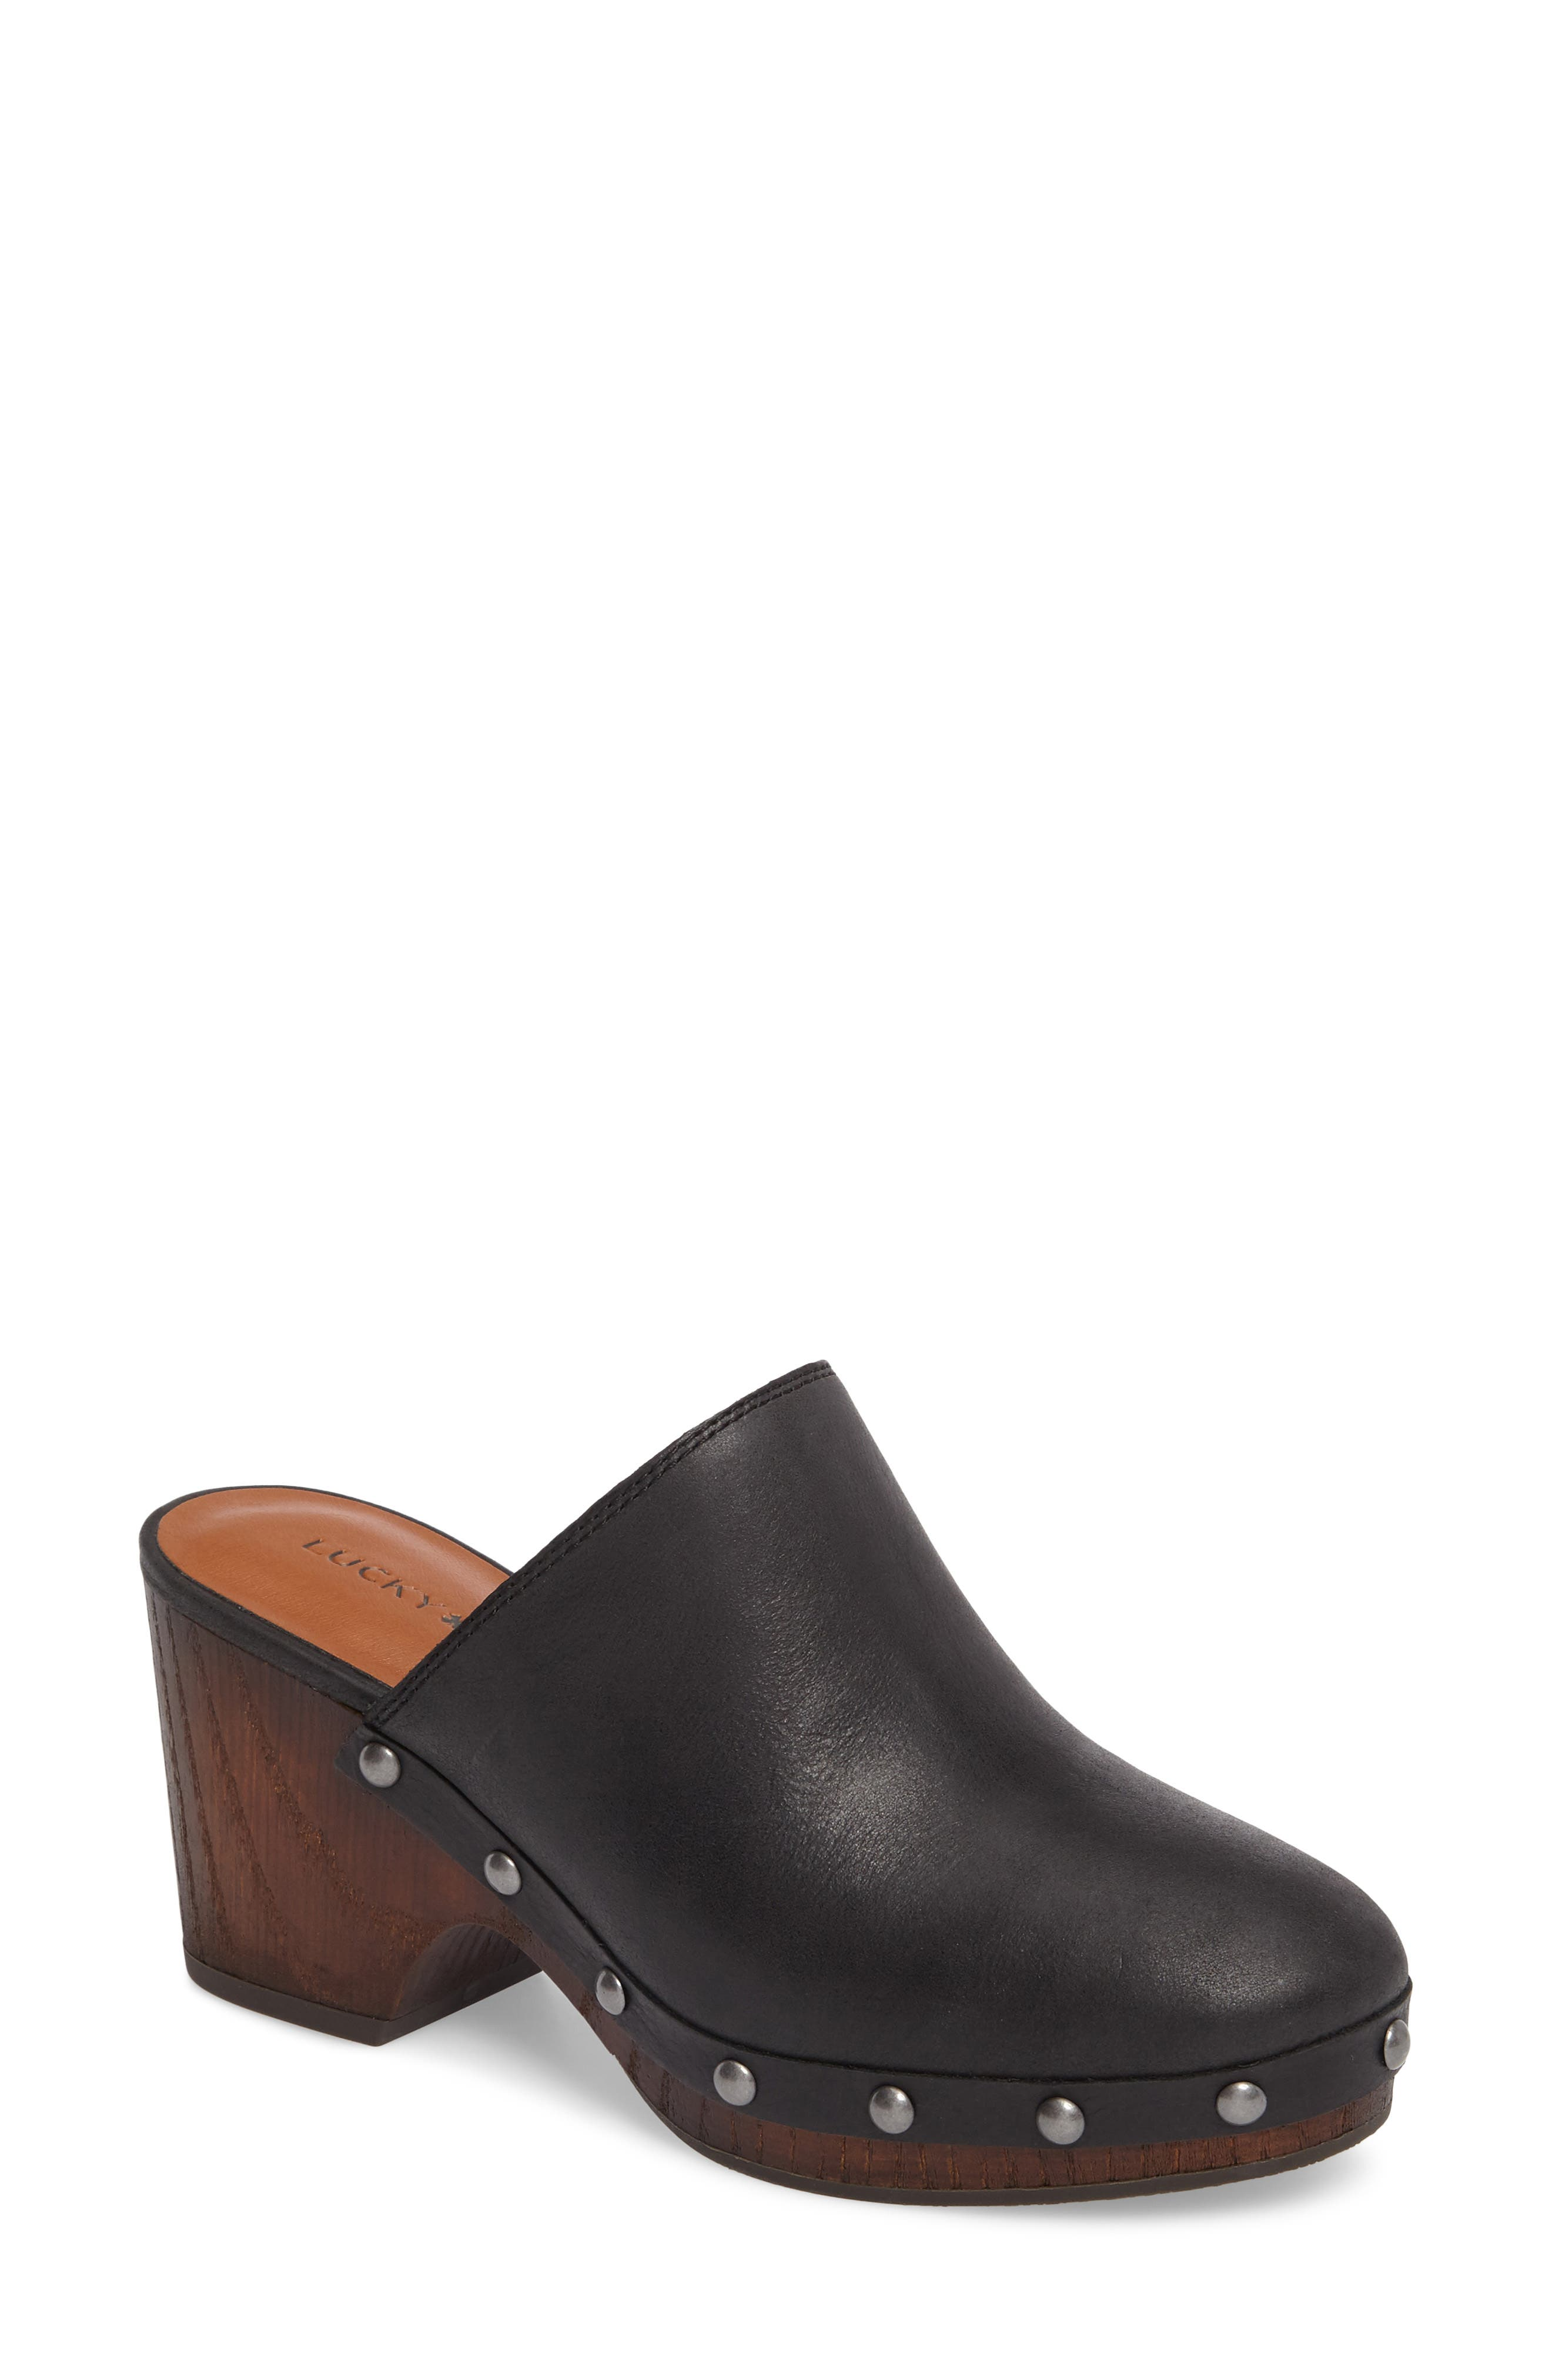 Yeats Clog,                         Main,                         color, 001